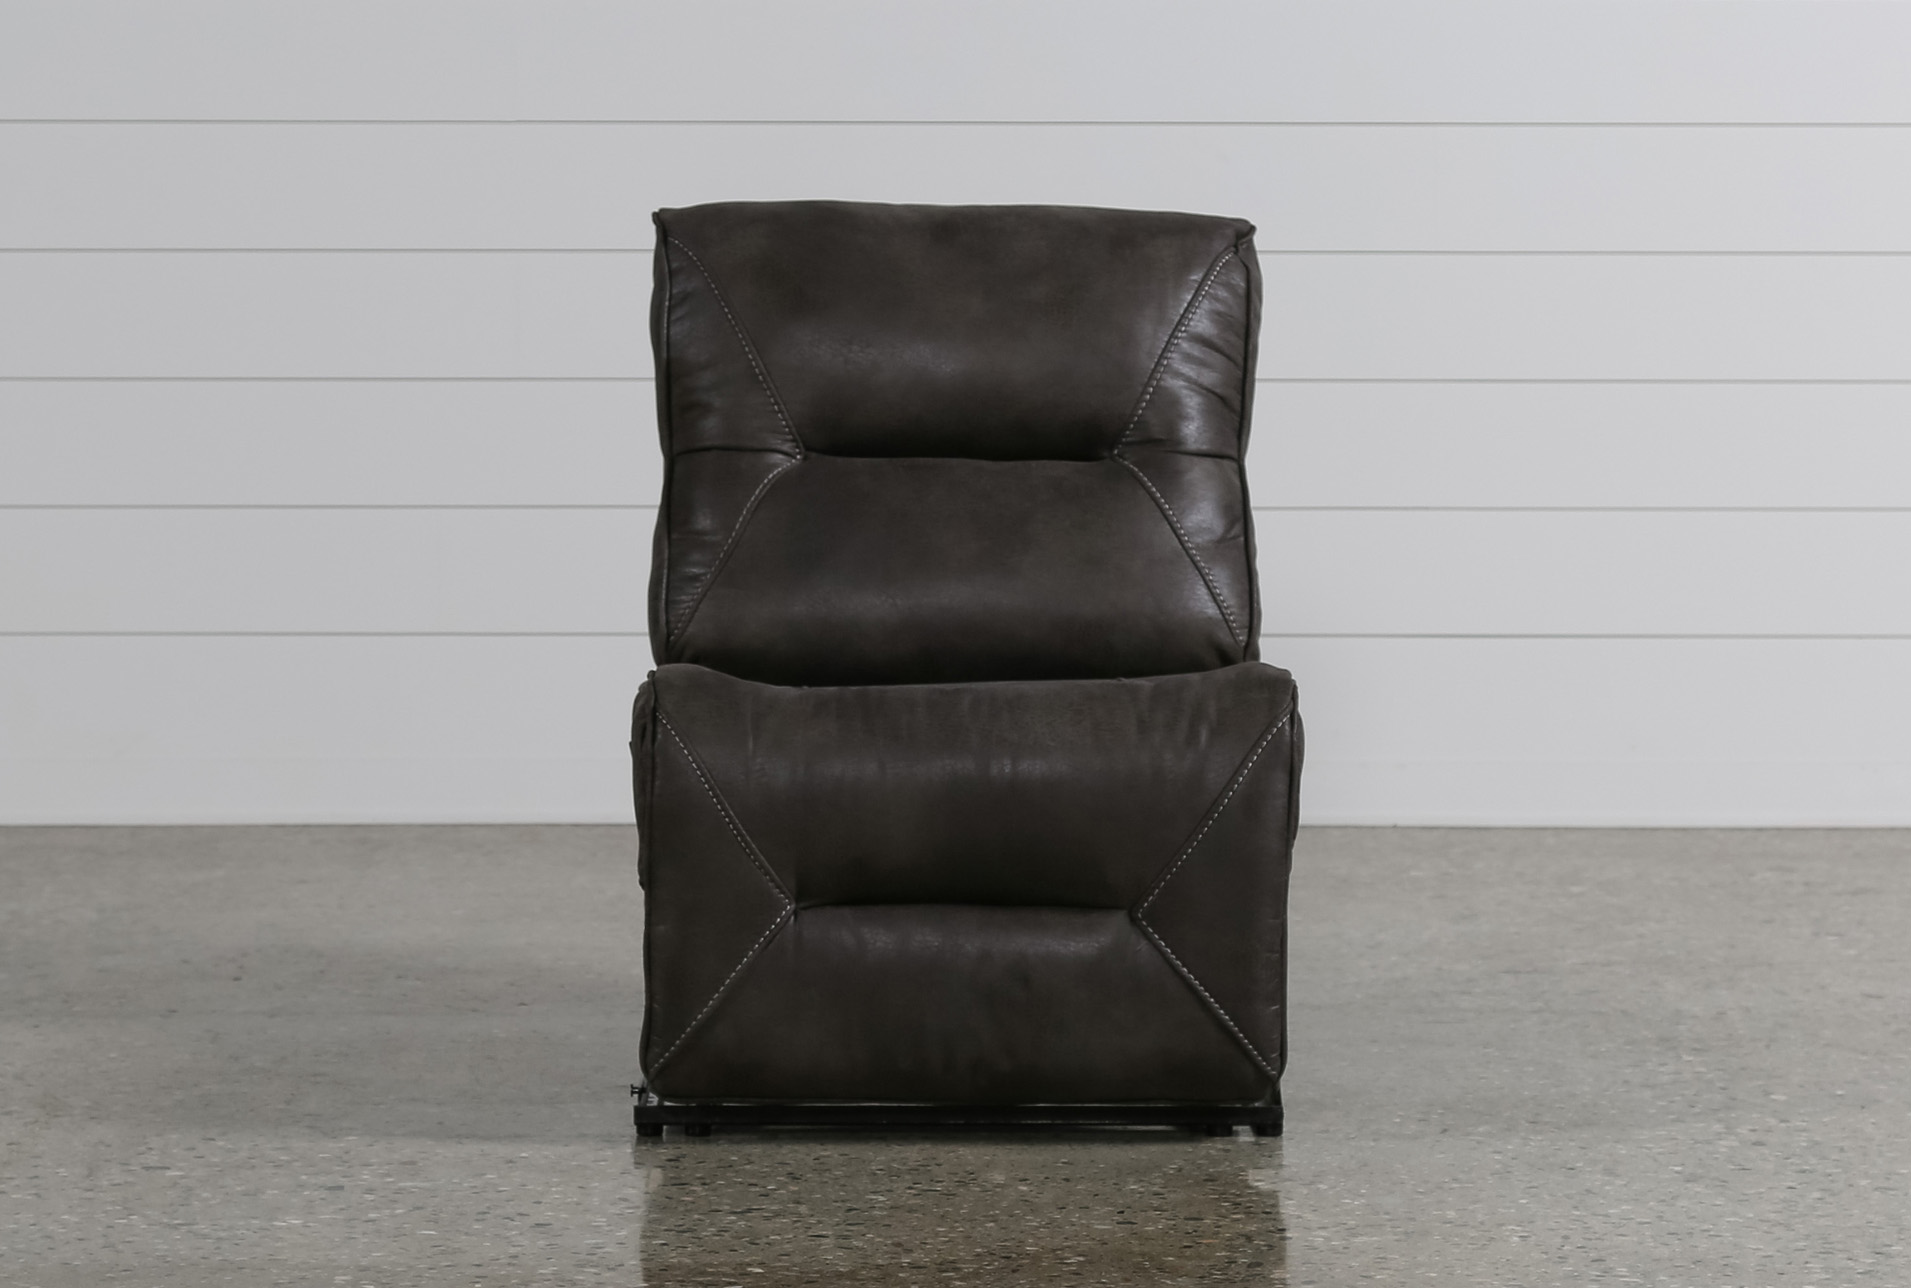 Merveilleux Calder Grey Armless Chair (Qty: 1) Has Been Successfully Added To Your Cart.